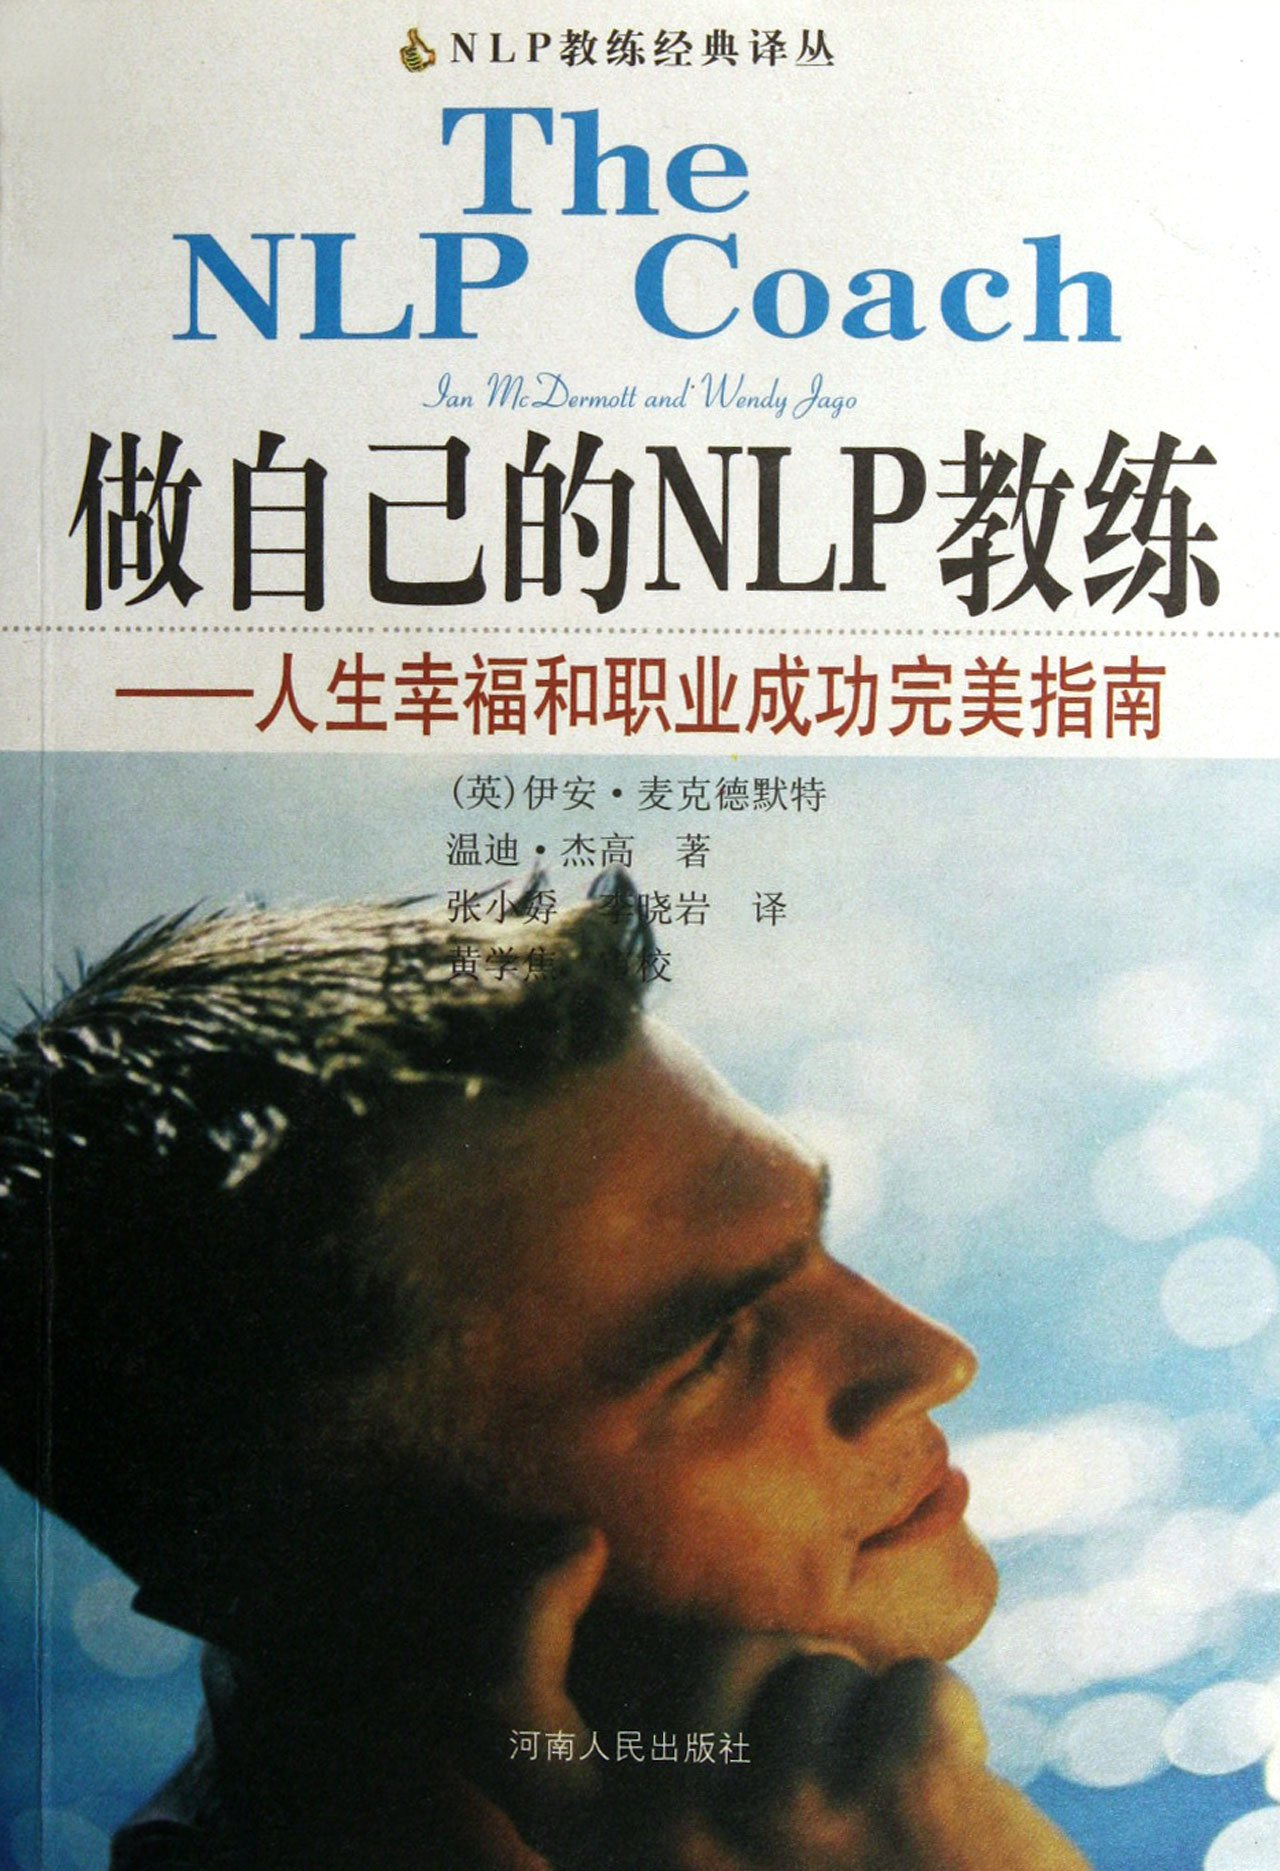 Be your Own NLP Coach: A Guidebook to Happiness and Success (Chinese Edition) pdf epub